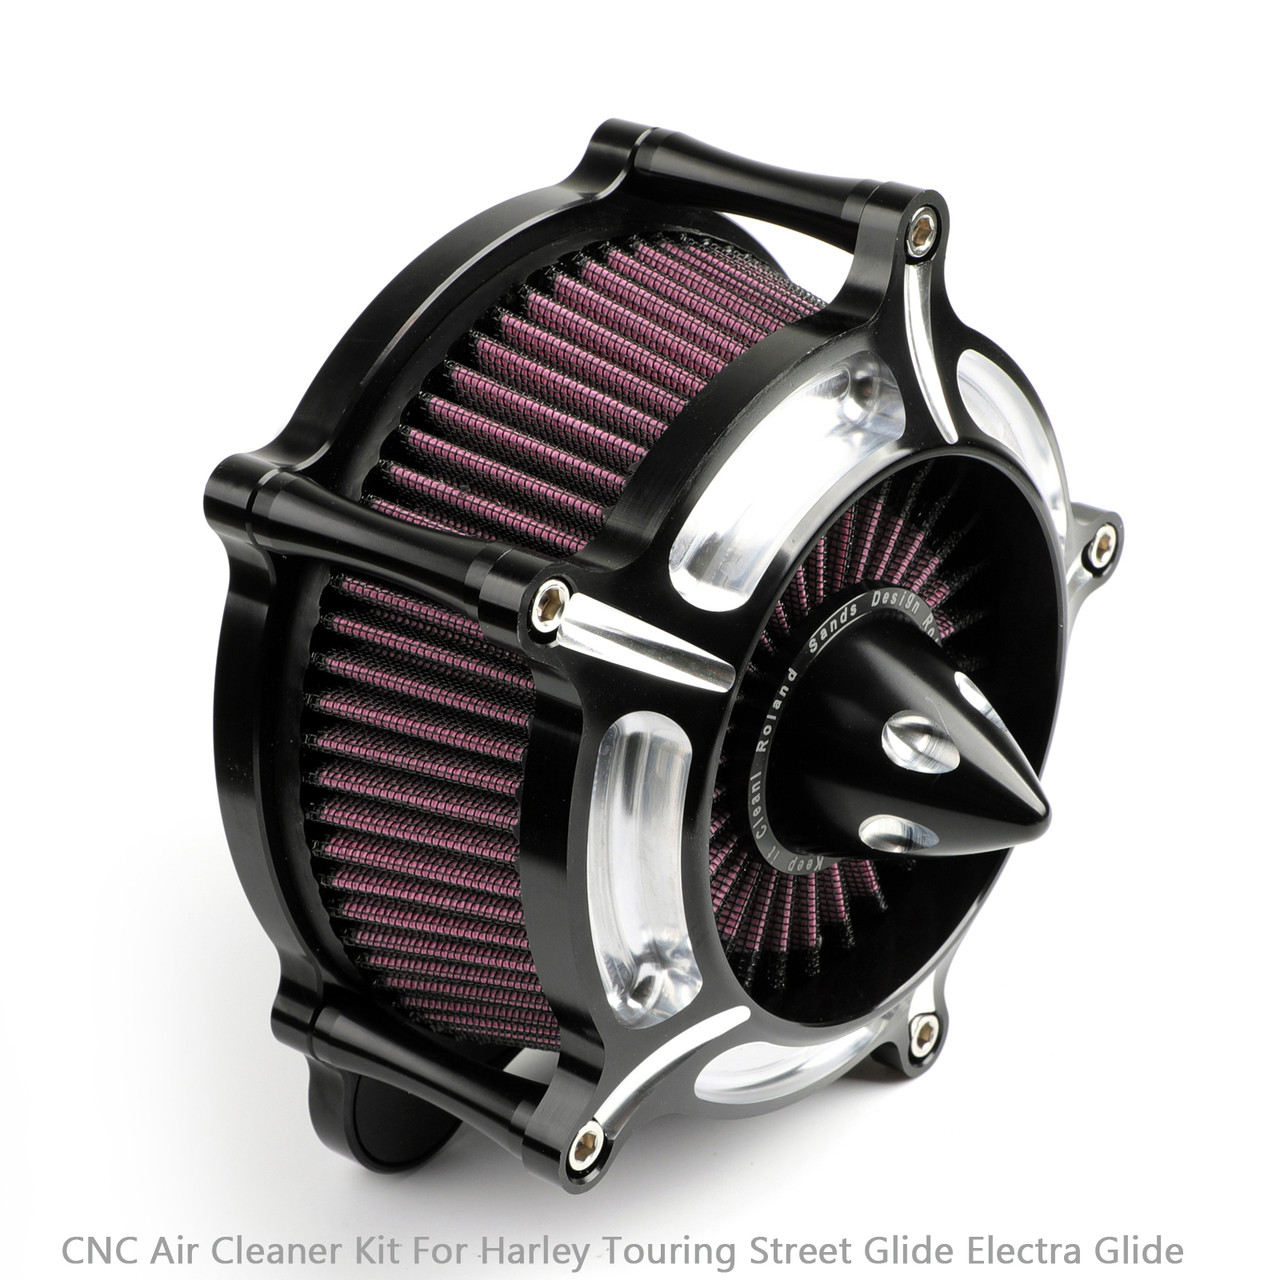 Air Cleaner intake filter For Harley Touring Street Glide,road king electra glide road glide Dyna FXDLS Softail Touring Trike Turbine